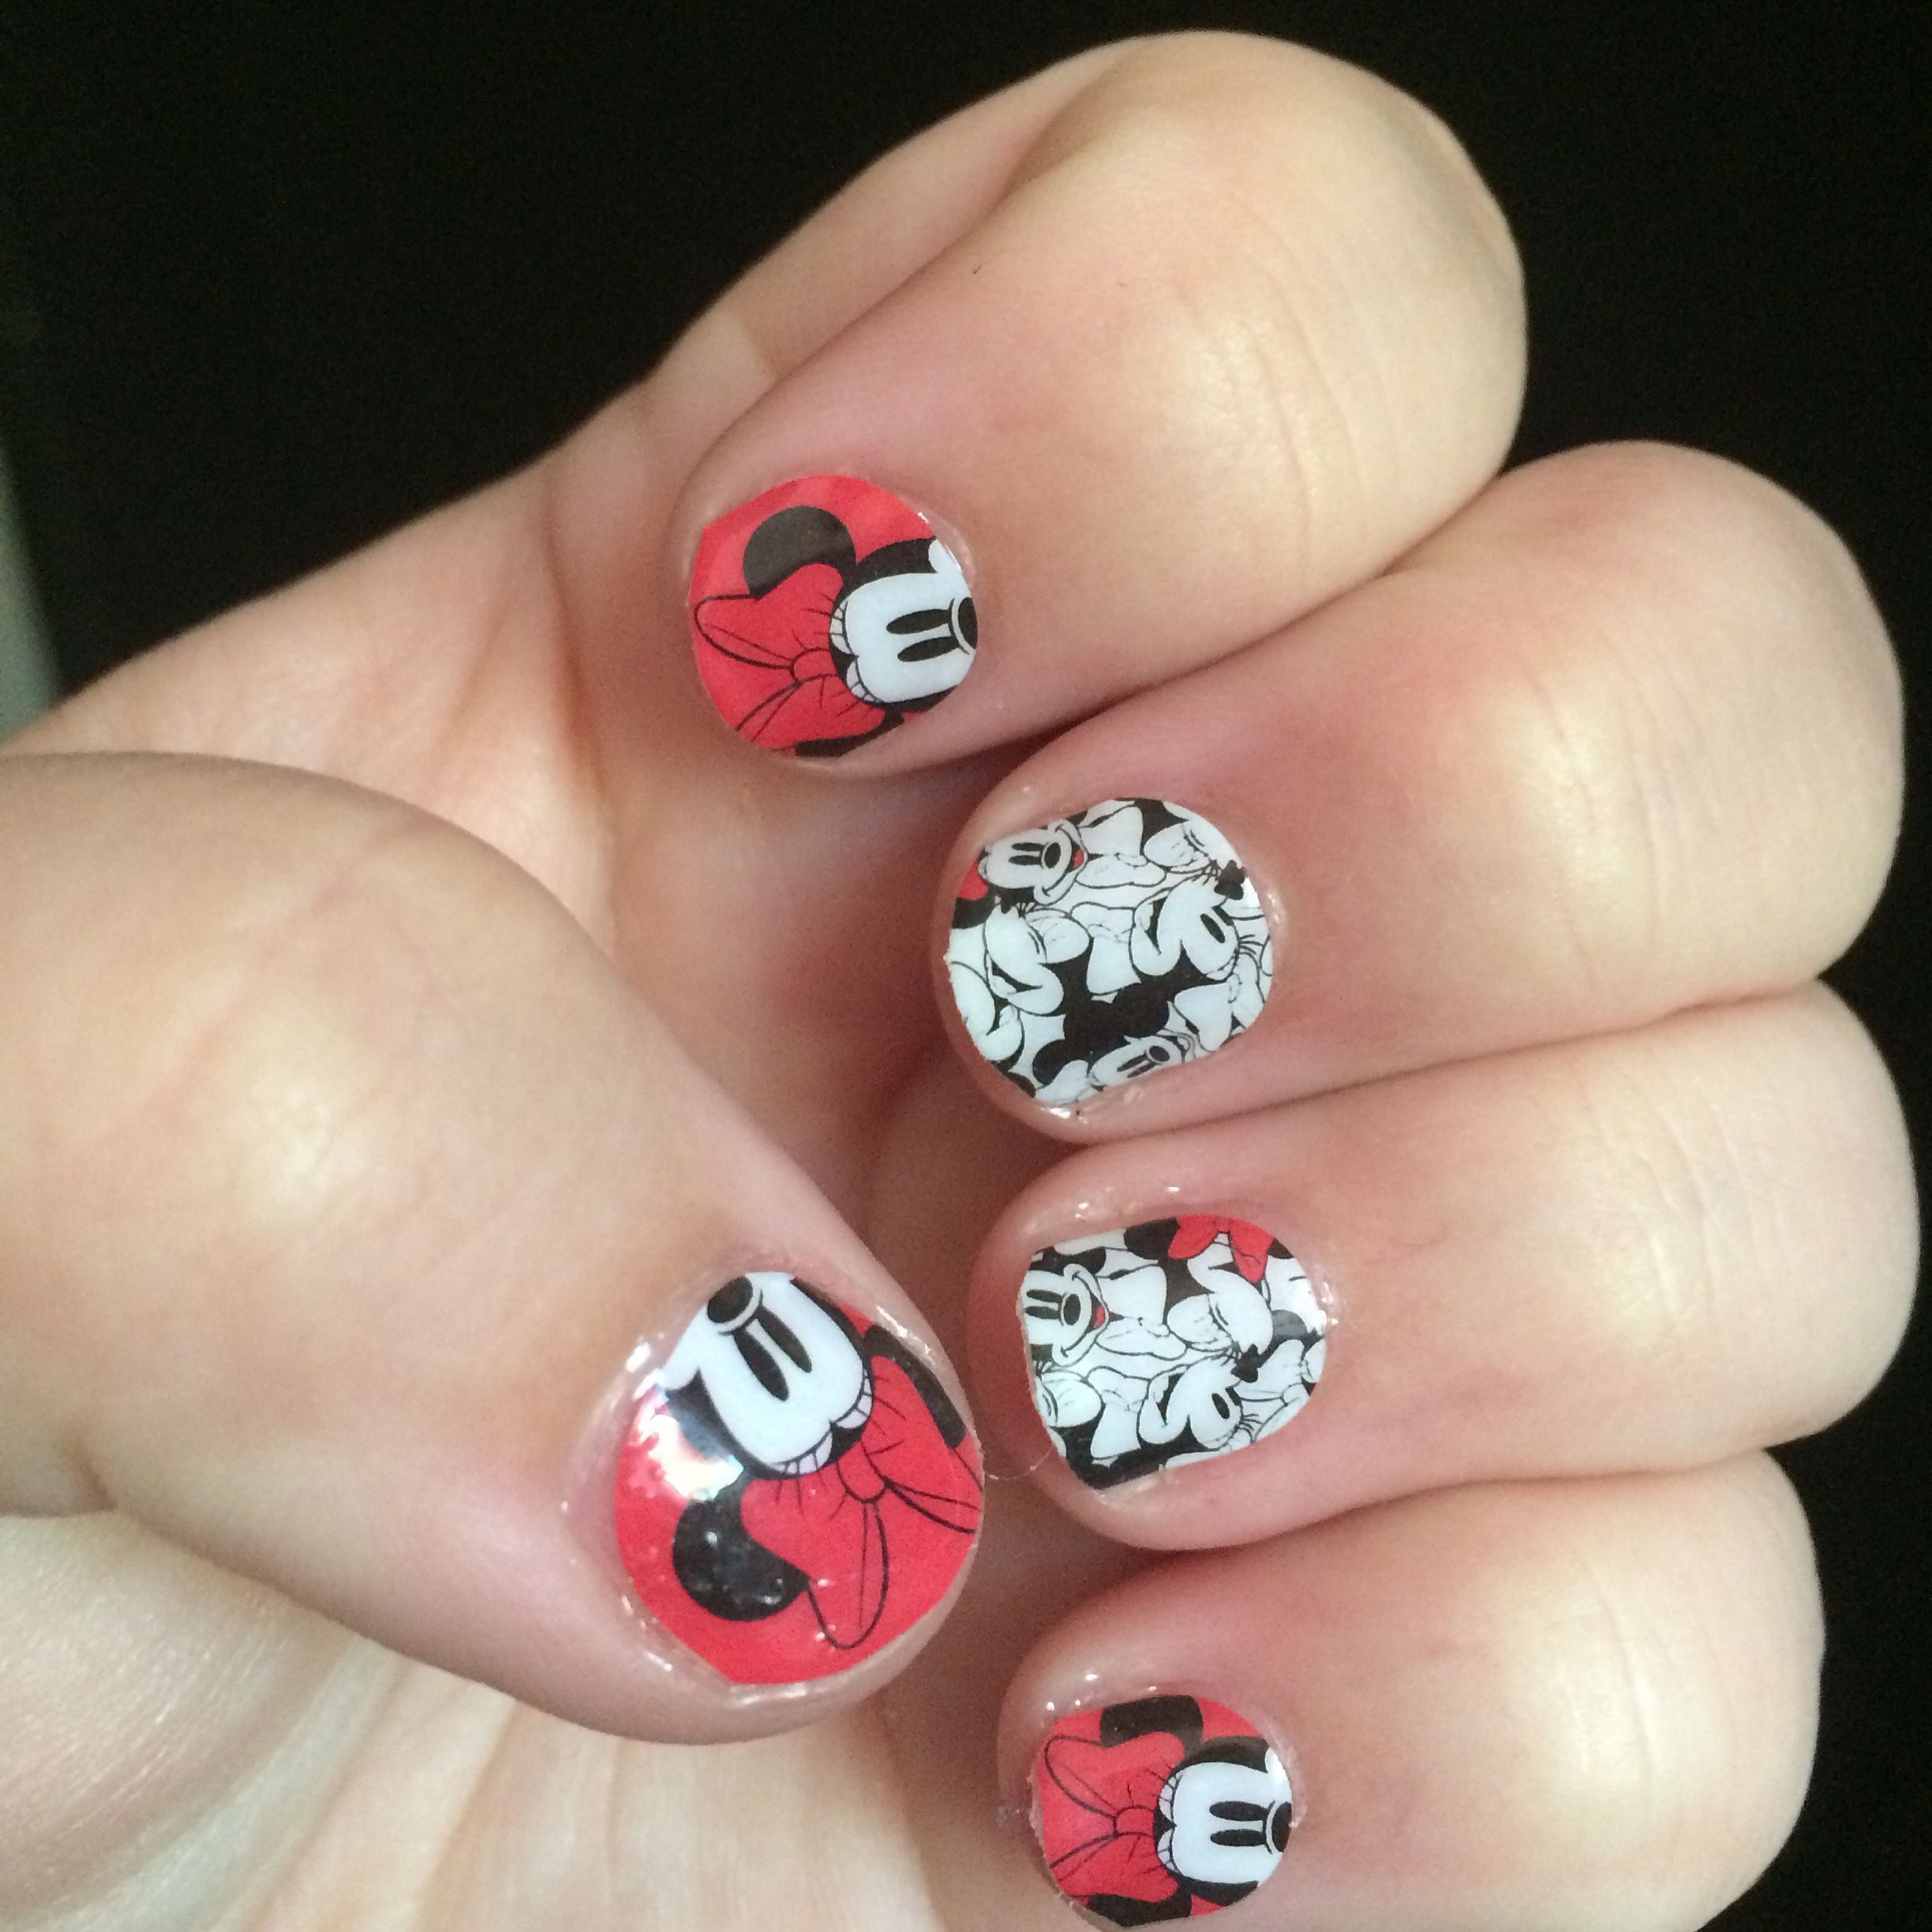 Disney collection by jamberry. Bowdacious.